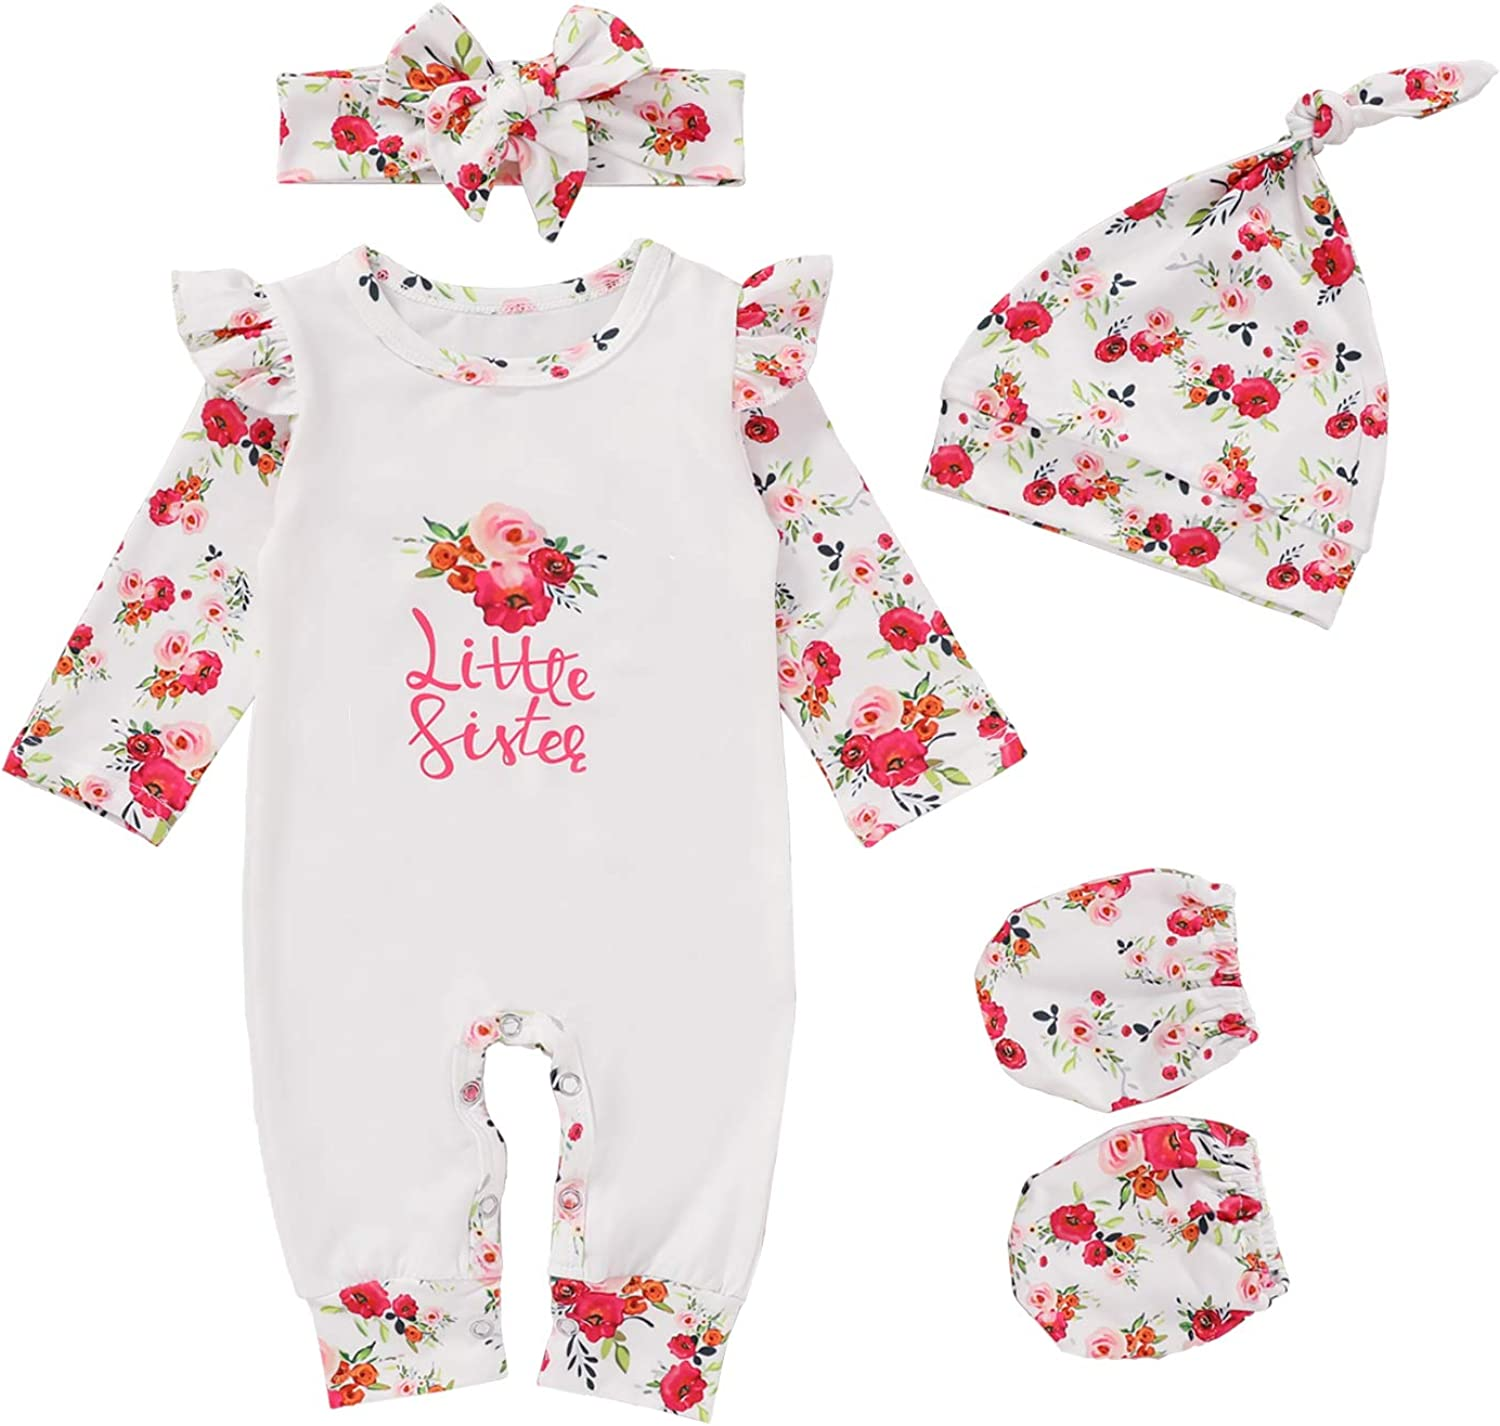 Baby Girl Little Sister Clothes Long Sleeve Romper Newborn Floral Print Overall Jumpsuit 5 Pieces Coming Home Outfit